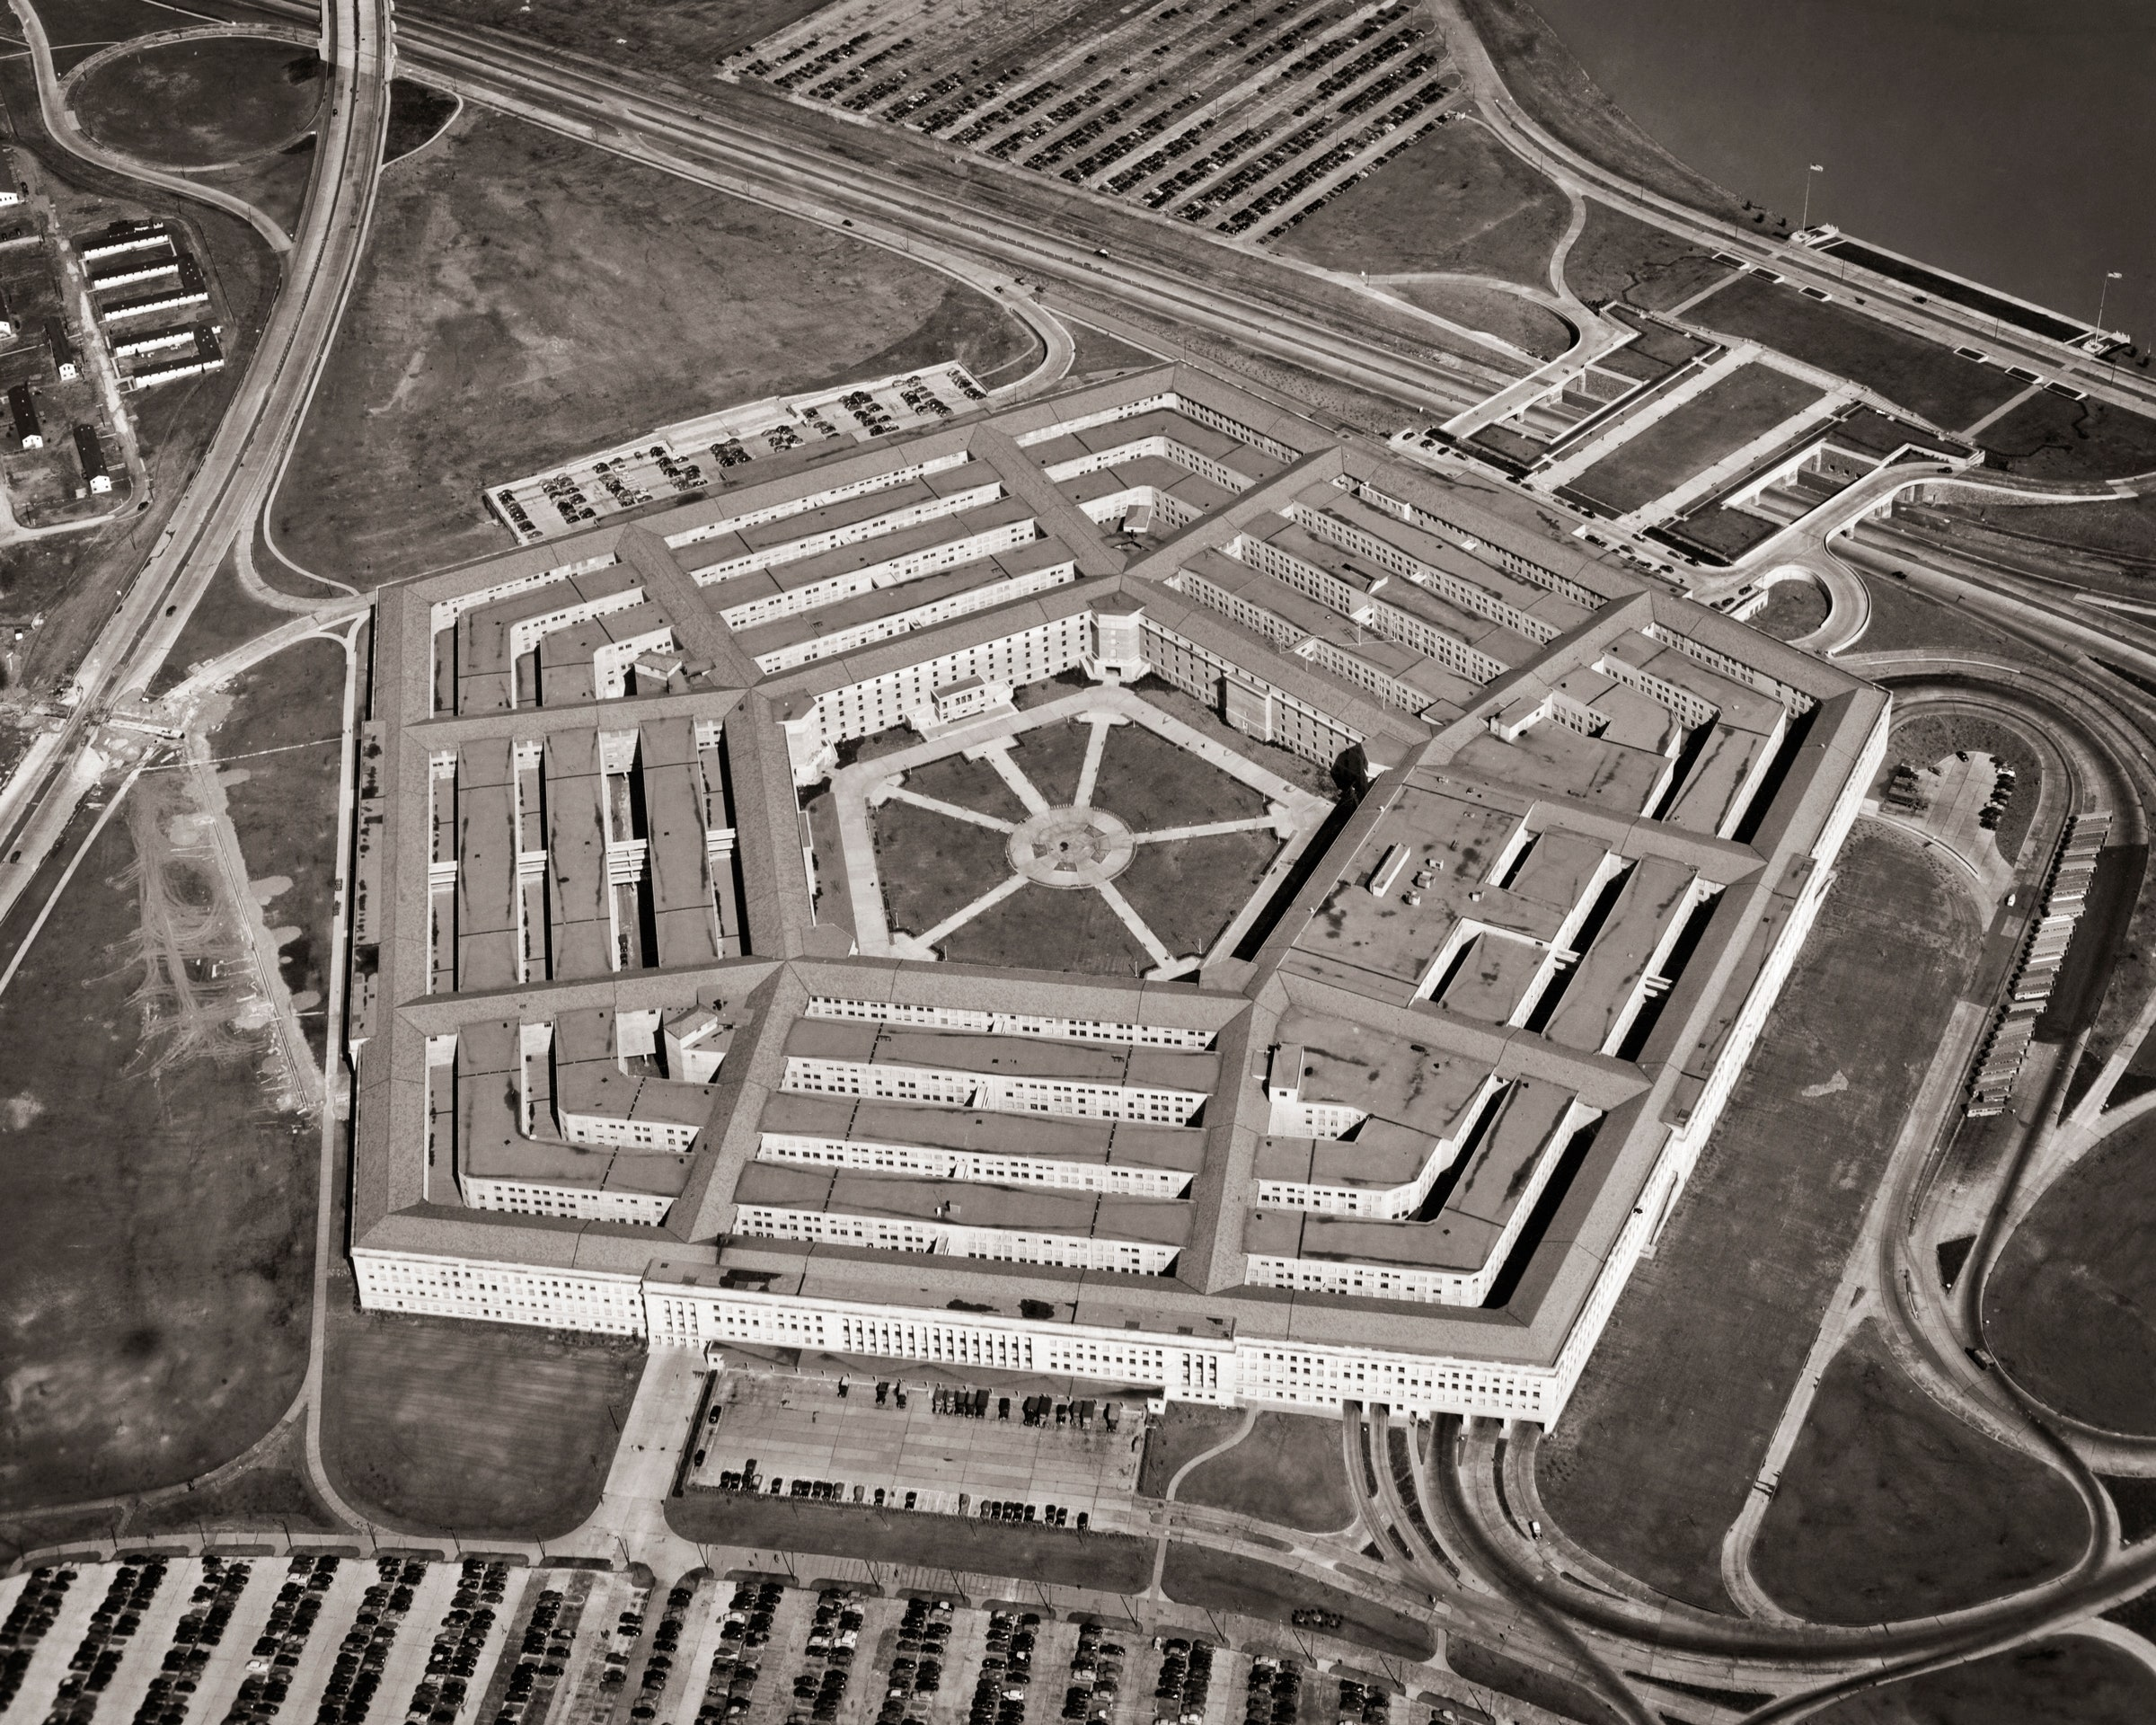 A black-and-white aerial view of the Pentagon in Washington, D.C.